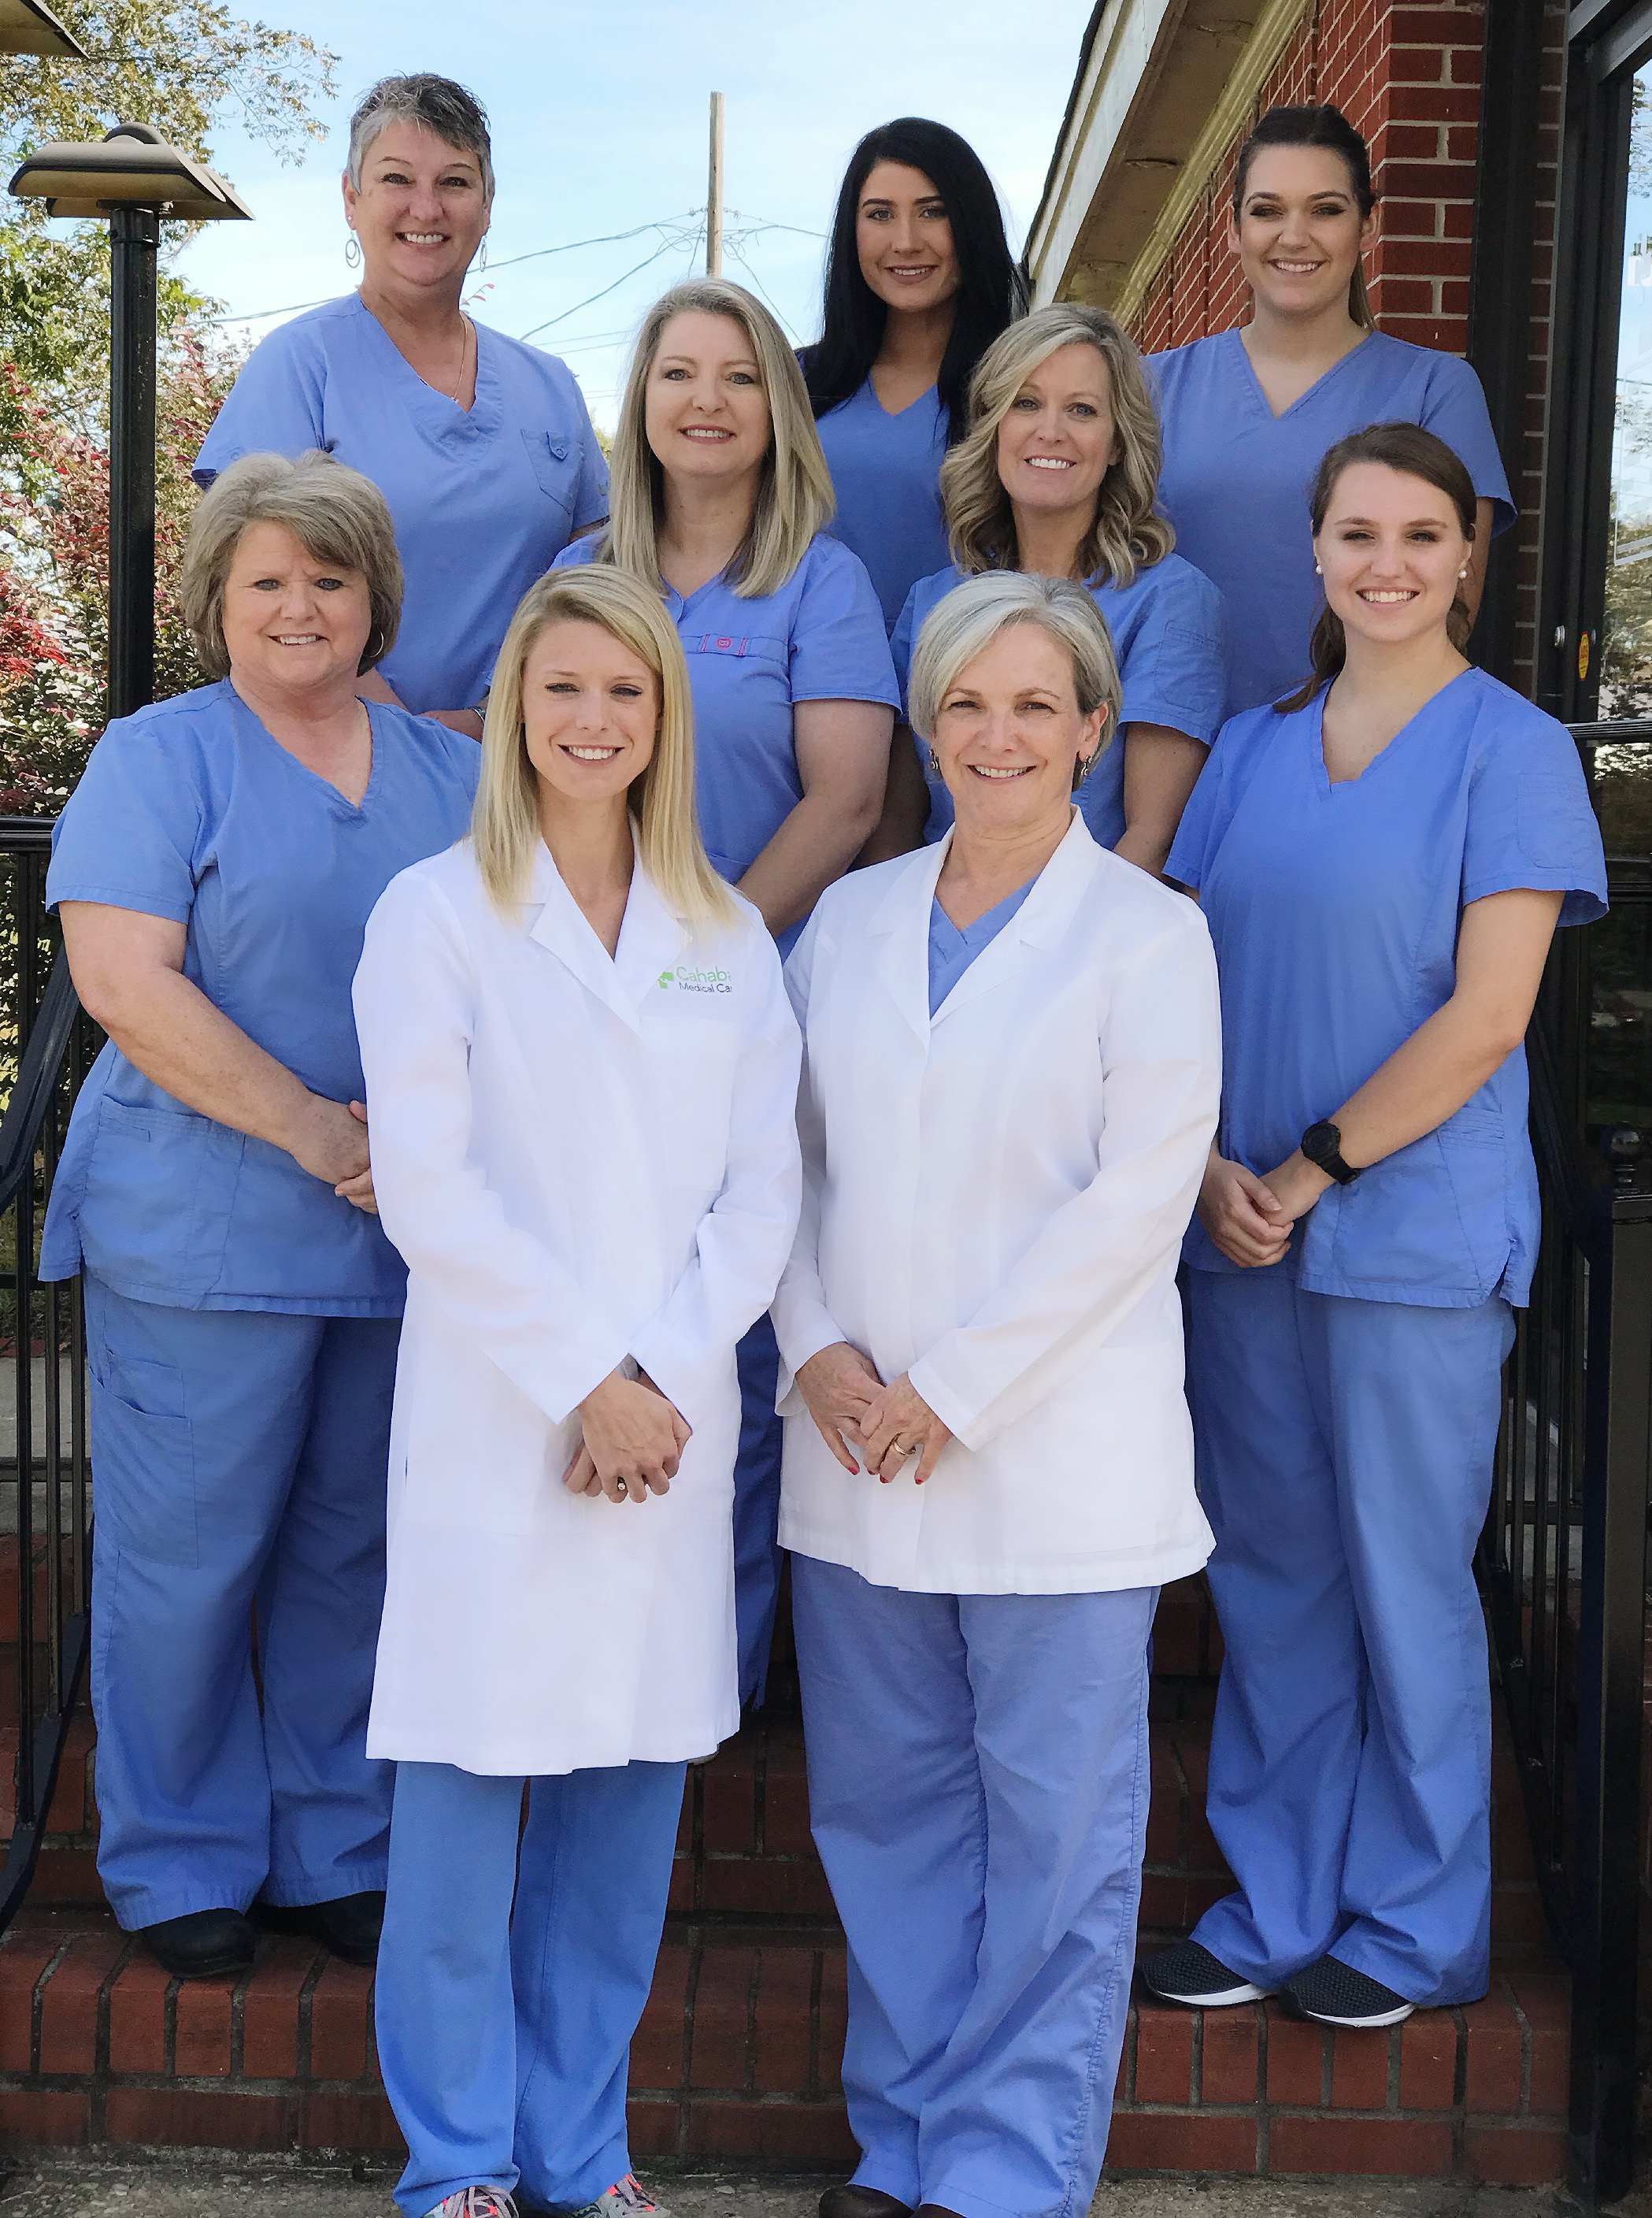 Top row, left to right: Sherry Sease, Receptionist; Erica Thomas, Dental Assistant; Mikayla Finnen, Dental Assistant    Middle: Cindy Bracknell, Receptionist; Karen Fondren, Registered Dental Hygienist; Karen Sessoms, Registered Dental Hygienist; Kaley Whaley, Dental Assistant    Bottom: Dr. Chelsea Maniscalco, DMD; Dr. Jennifer Wright, DMD